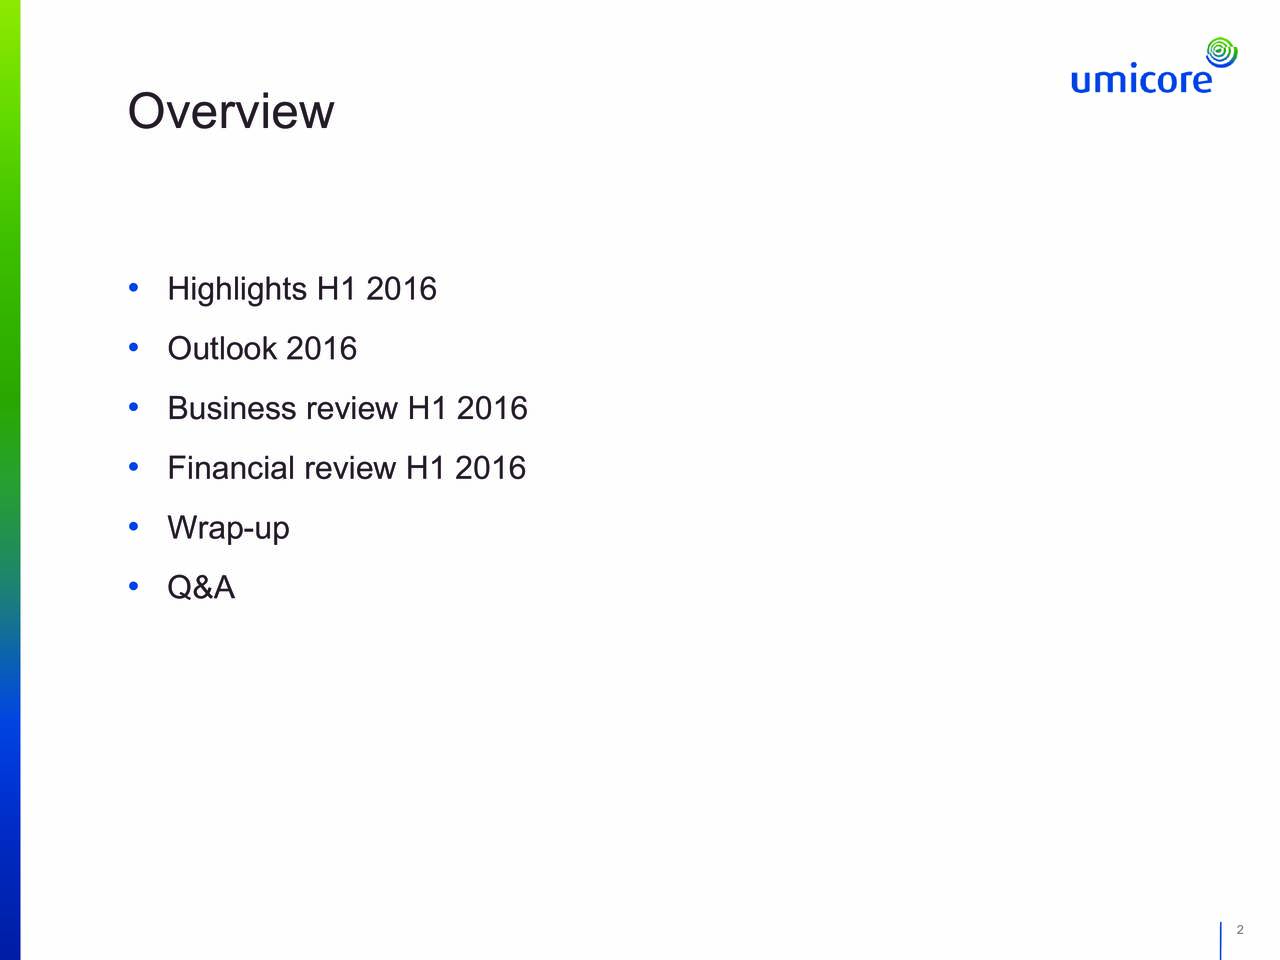 Highlights H1 2016 Outlook 2016 Business review H1 2016 Financial review H1 2016 Wrap-up Q&A 2